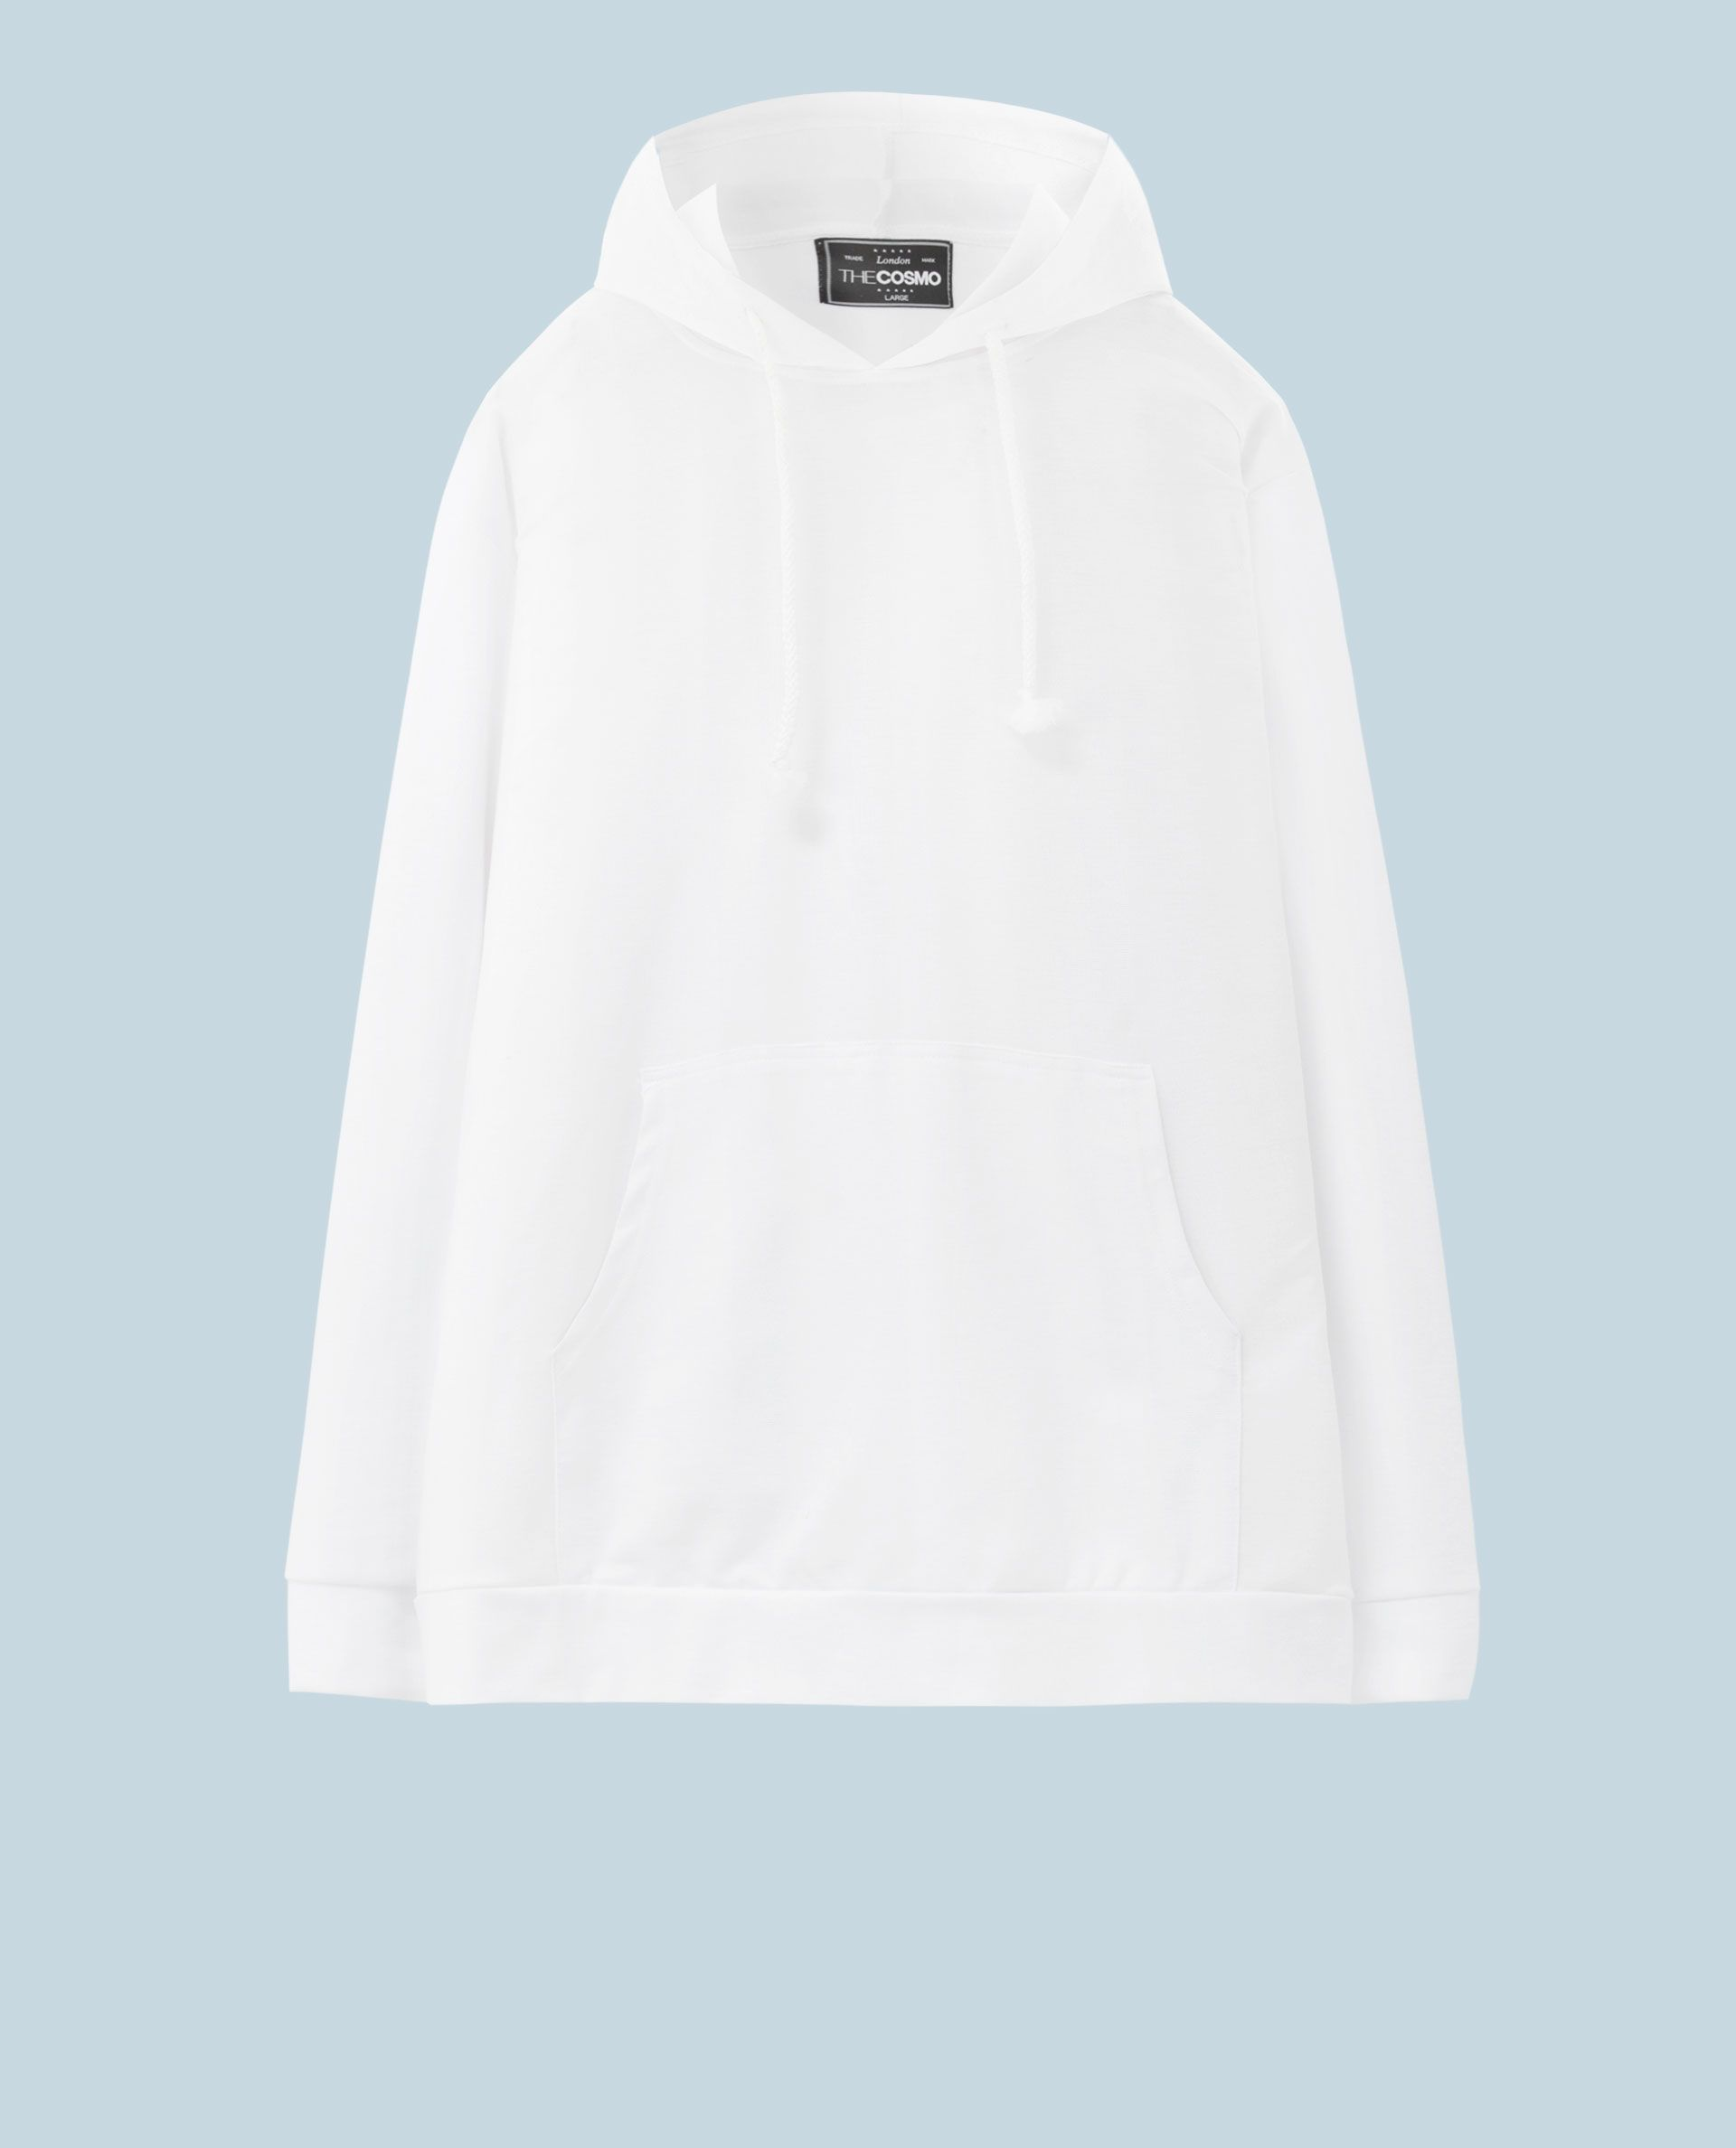 SWEATSHIRT WITH POUCH POCKET (WHITE)